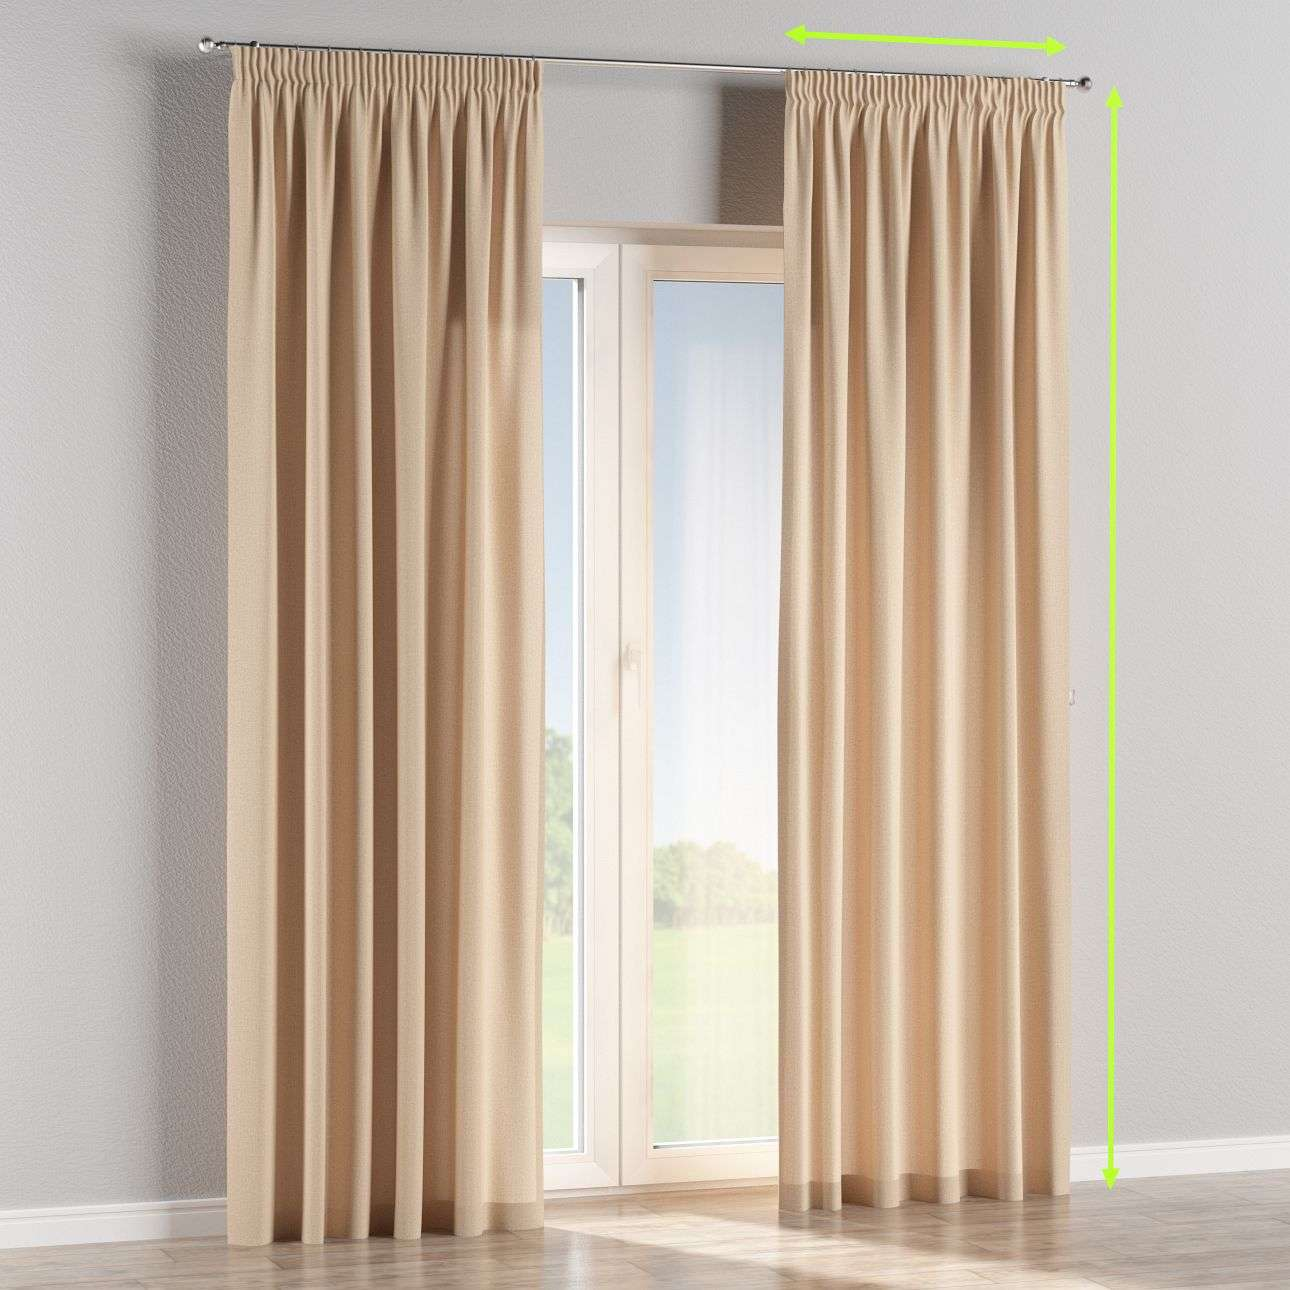 Pencil pleat lined curtains in collection Edinburgh , fabric: 115-78